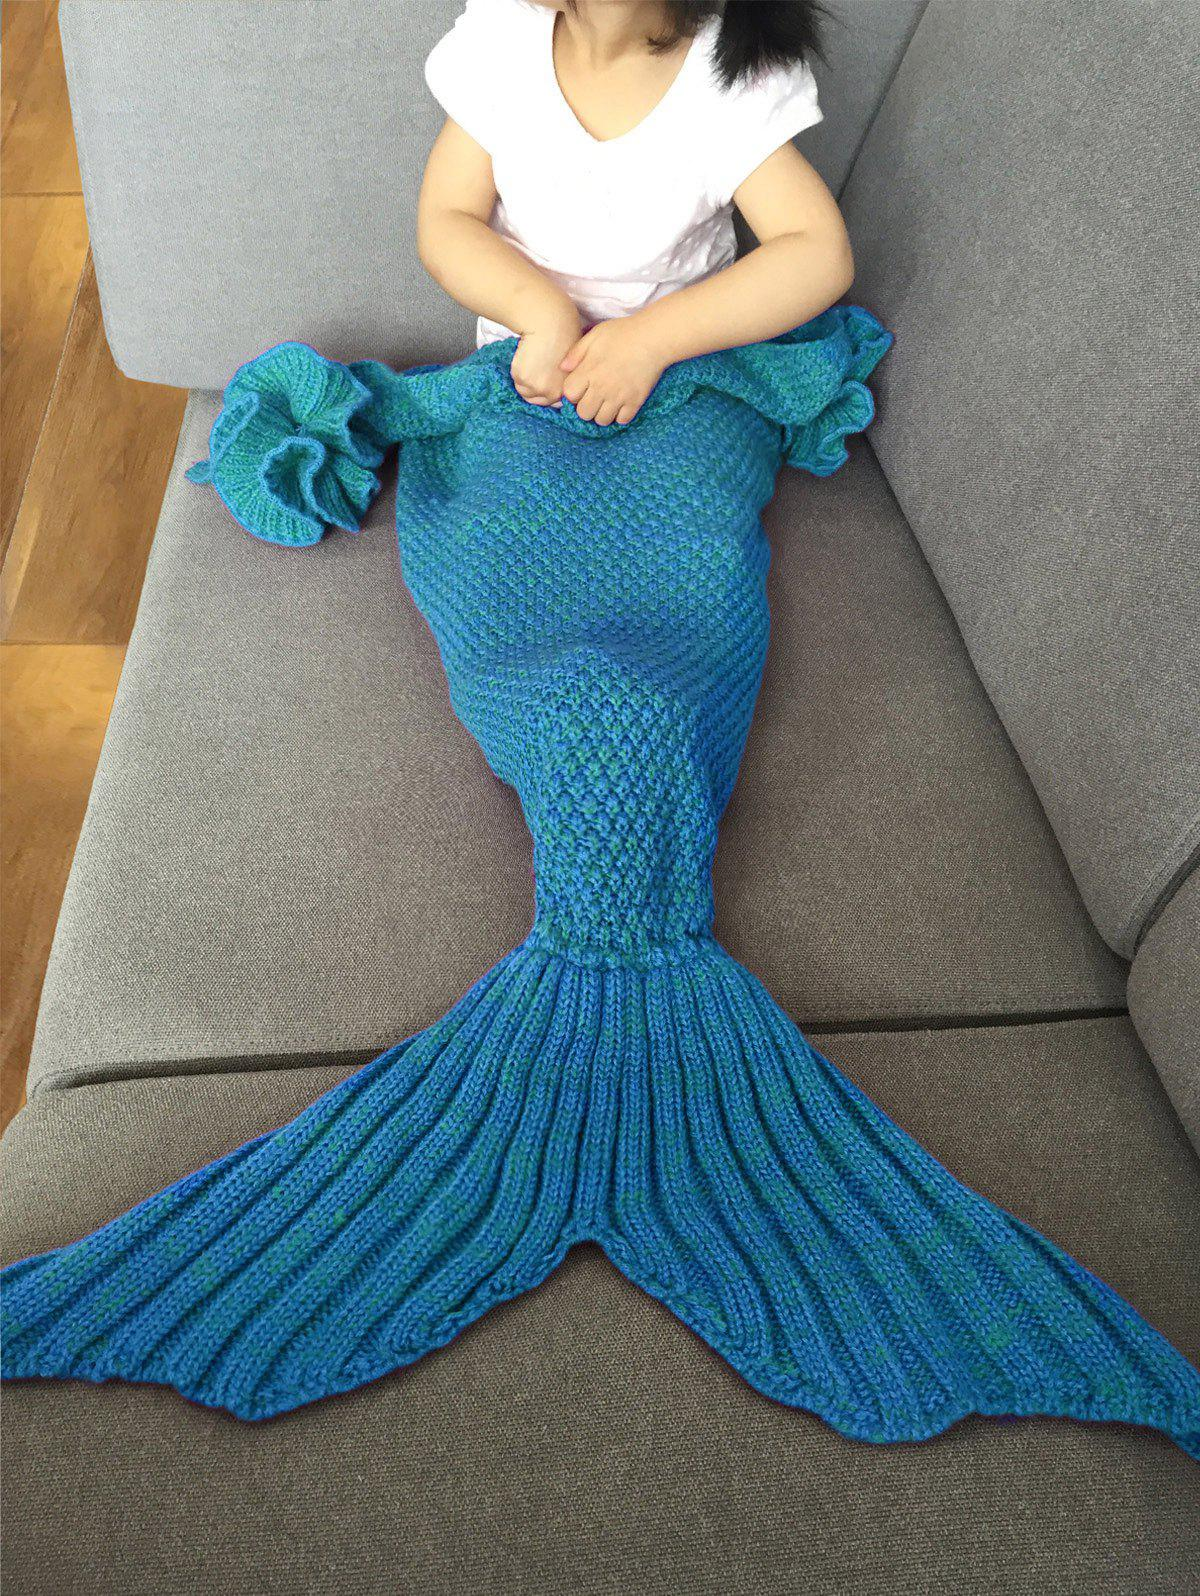 Fashion Knitted Falbala Shape Mermaid Tail Design Blankets For Baby - BLUE